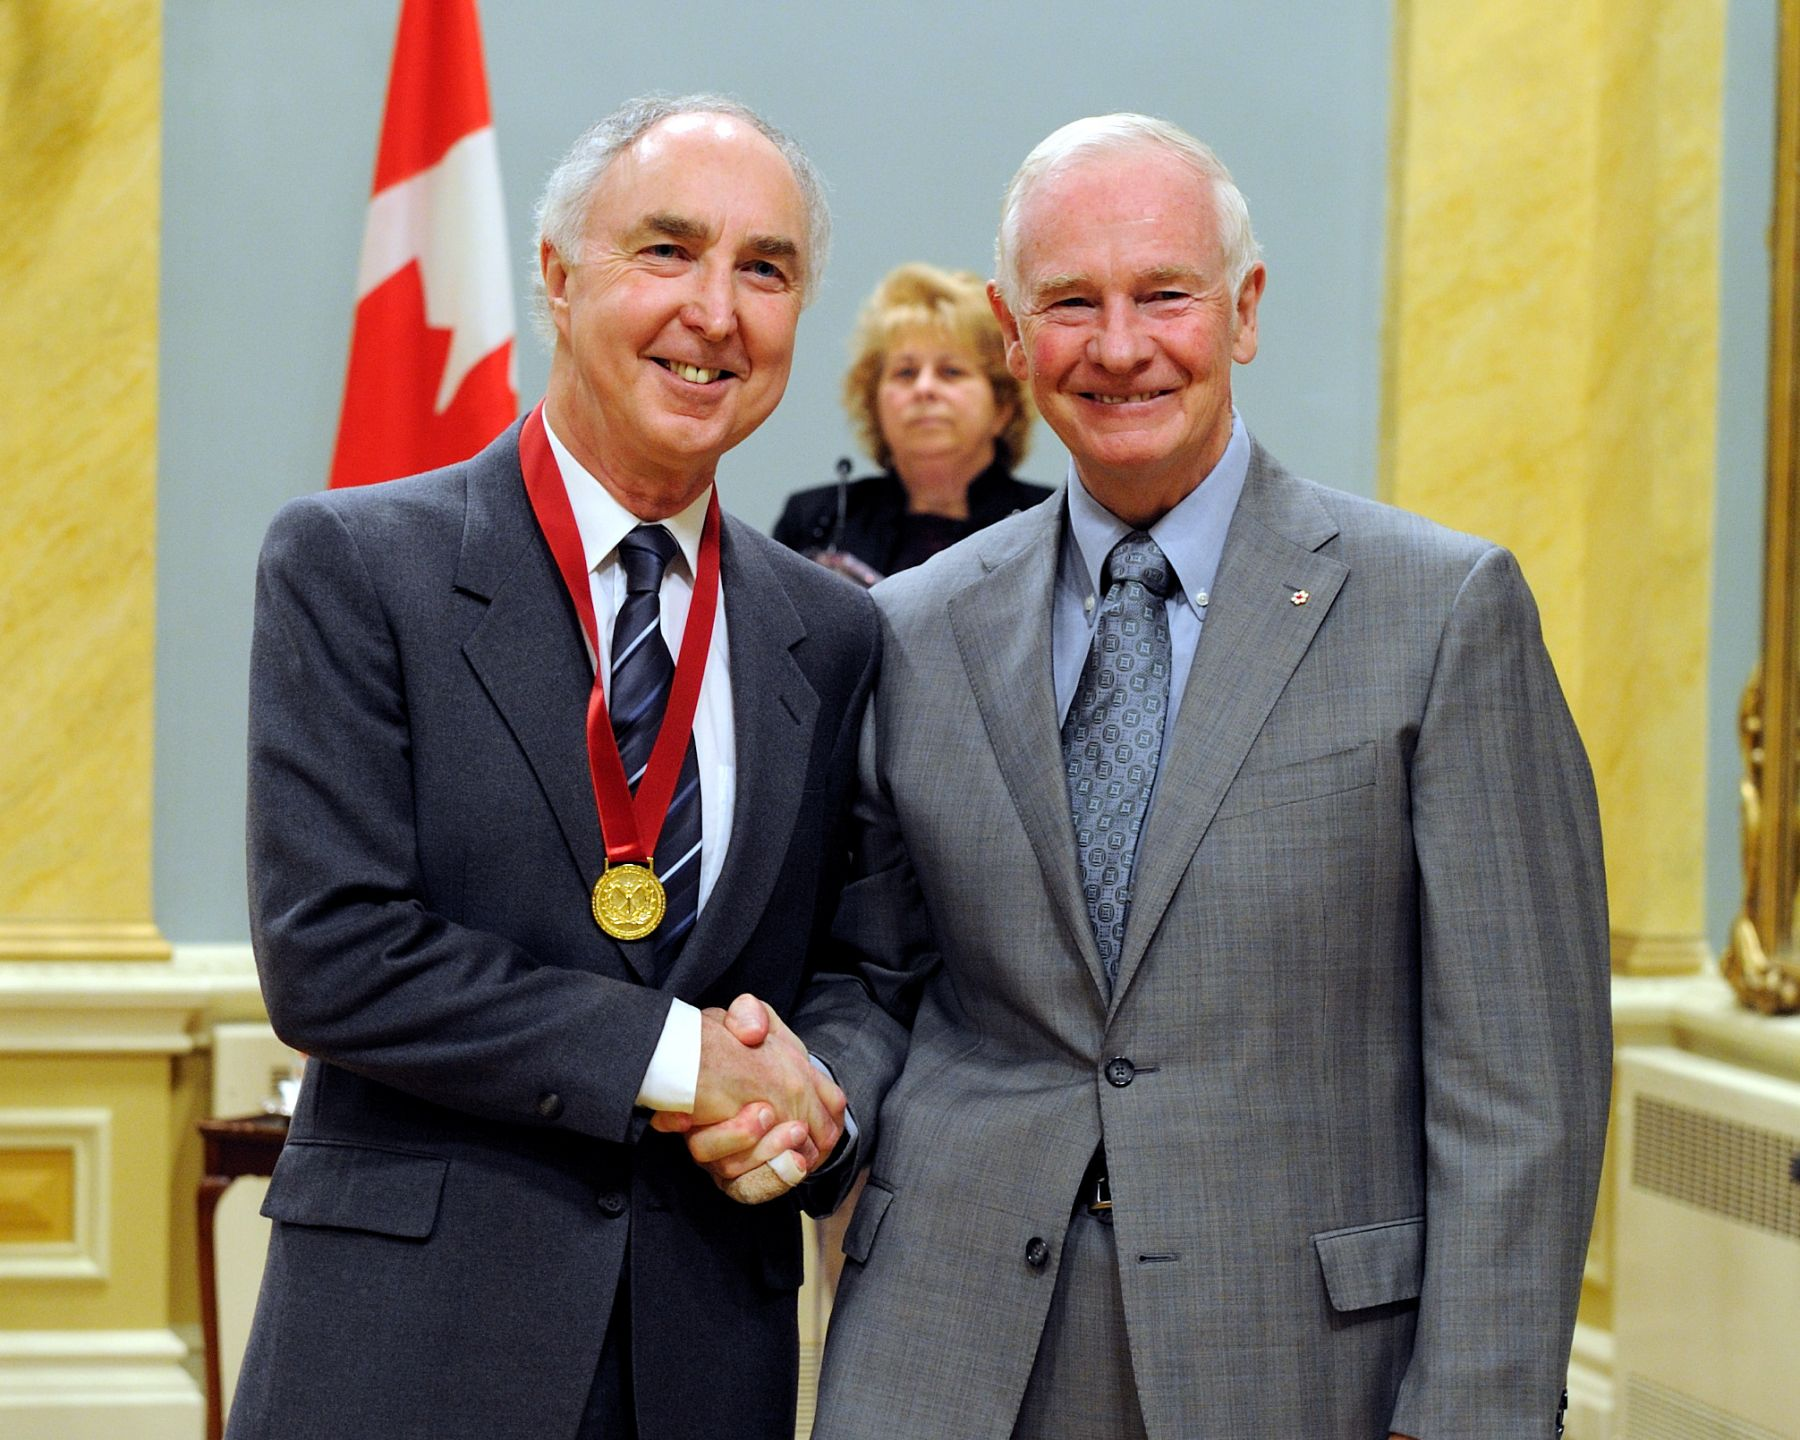 His Excellency the Right Honourable David Johnston, Governor General of Canada, presented the Governor General's Awards for Excellence in Teaching Canadian History to eight teachers during a ceremony at Rideau Hall. Mr. Daniel Conner from Rockridge Secondary School in West Vancouver, British Columbia received the award from His Excellency.